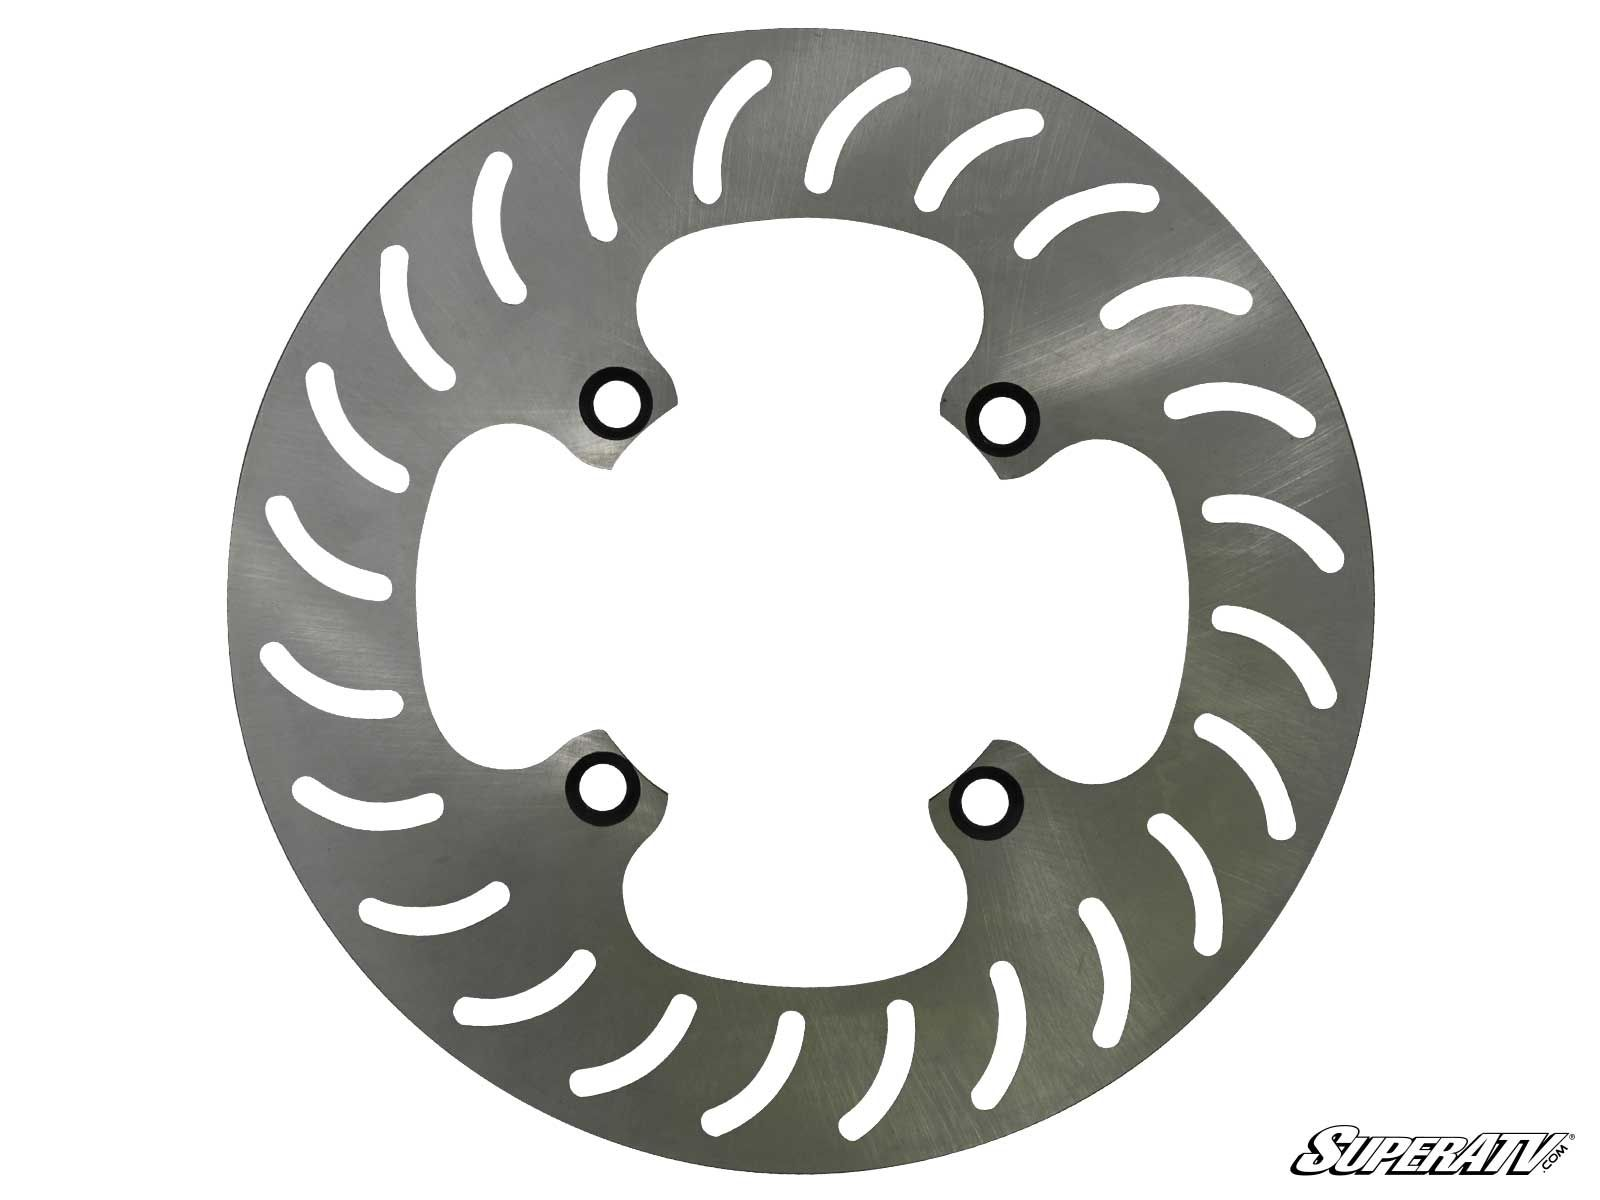 Replacement Portal Brake Rotor Kit - Super ATV